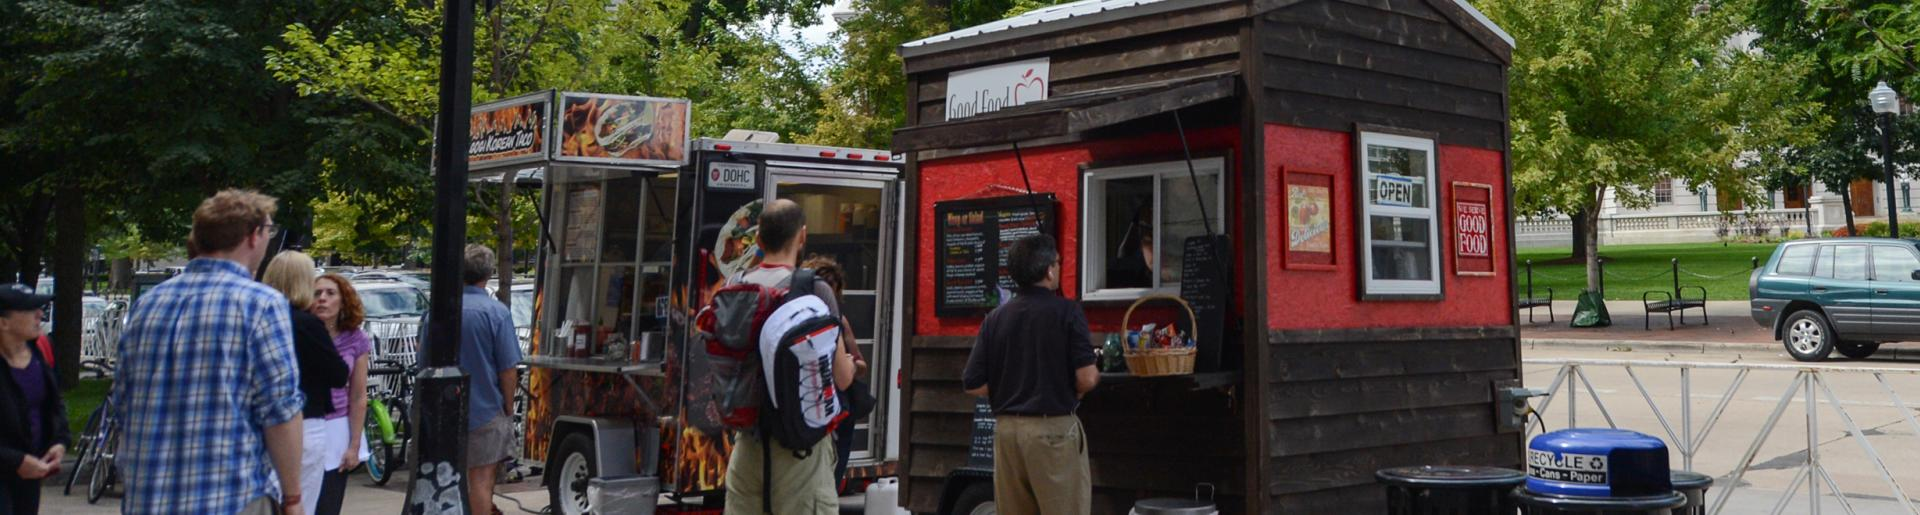 Food Carts in Madison